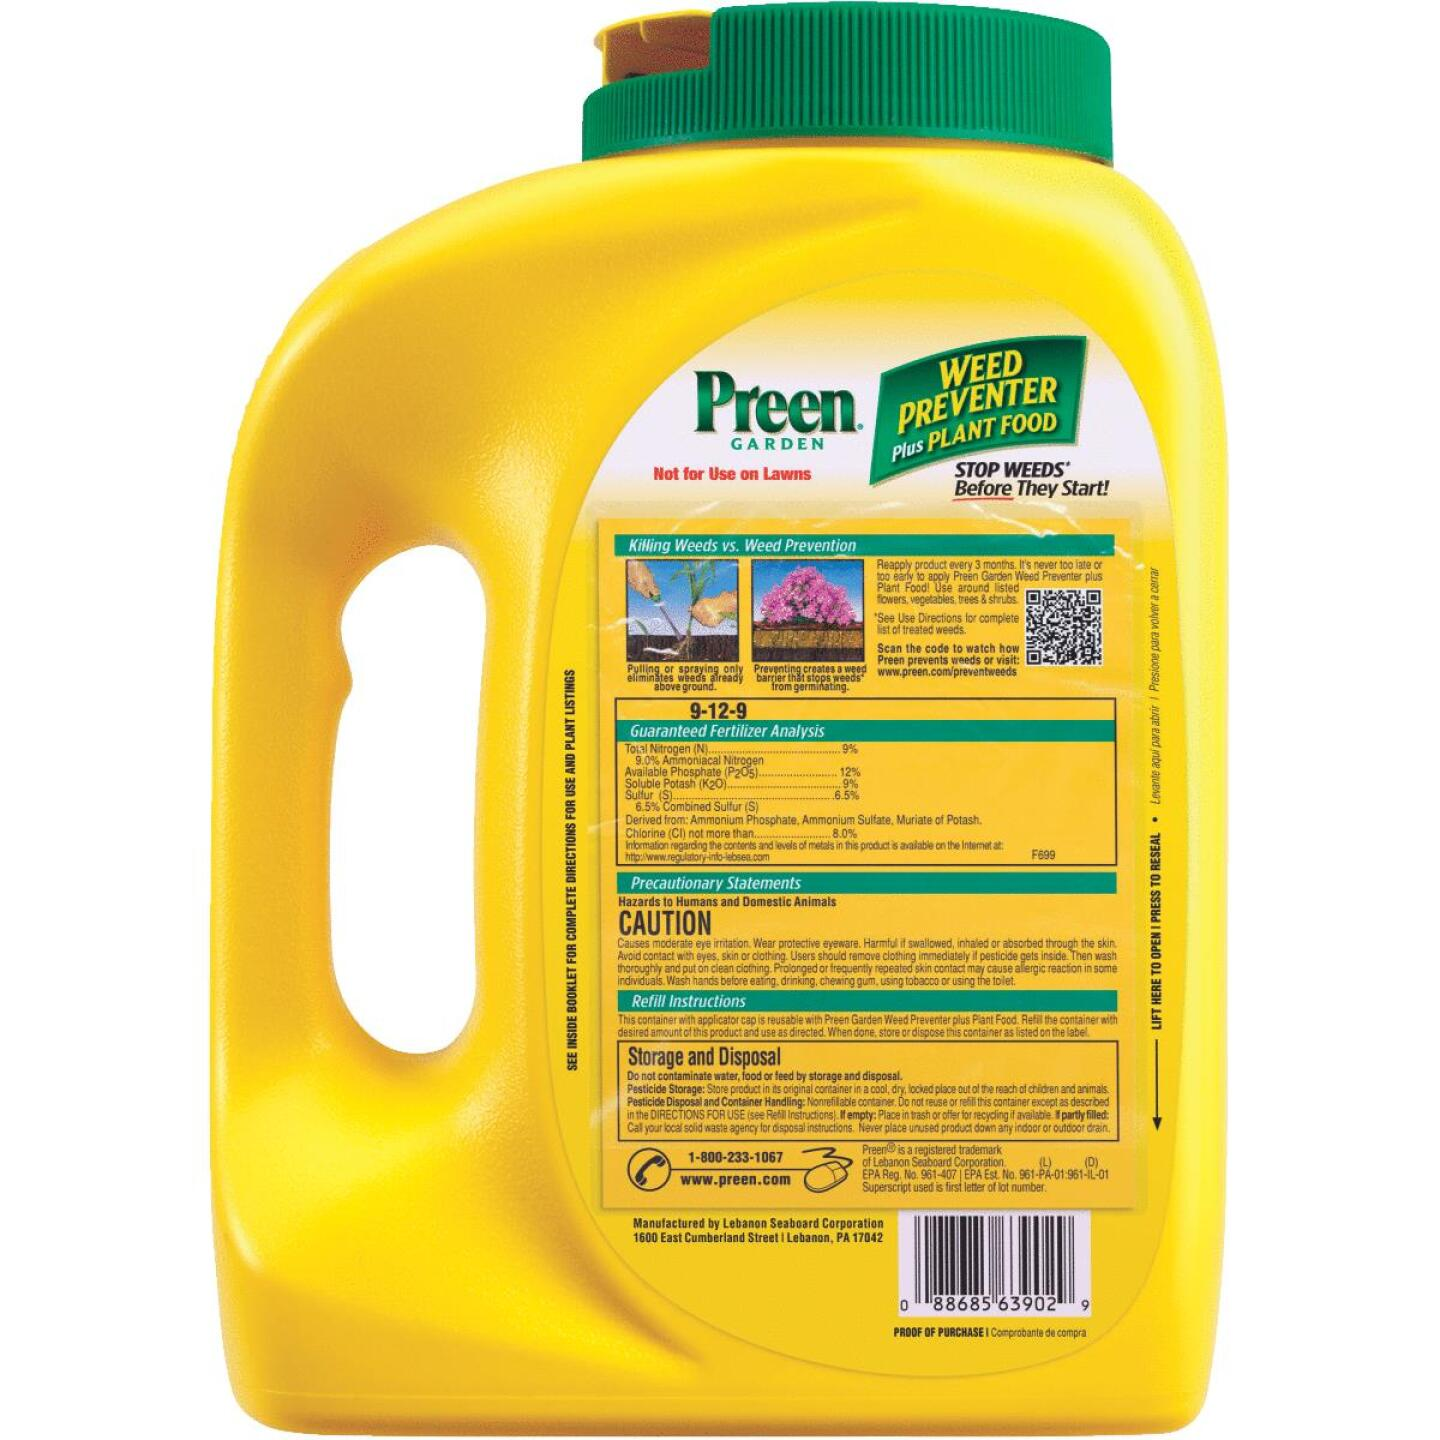 Preen 5.625 Lb. Ready To Use Granules Garden Weed Preventer Plus Plant Food Image 2